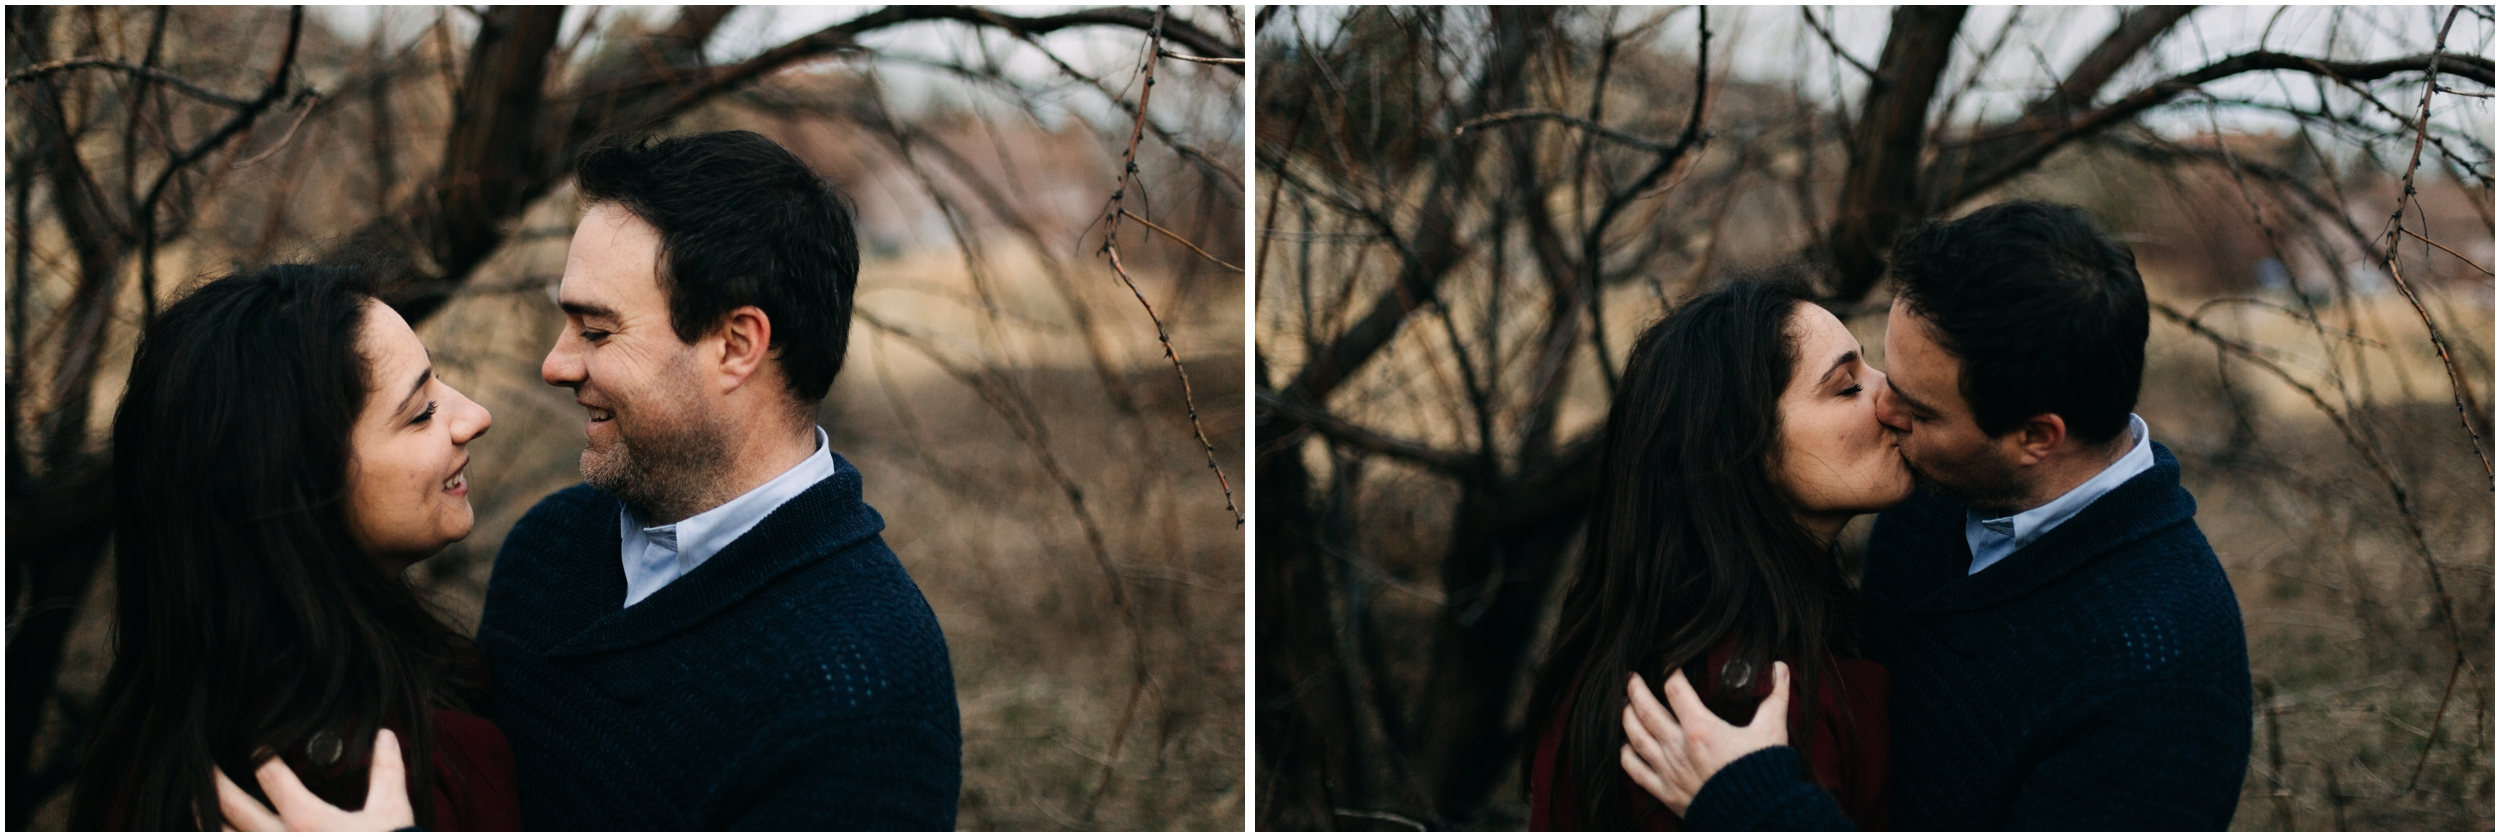 moody mountain engagement session-denver wedding photographer-colorado_0056.jpg